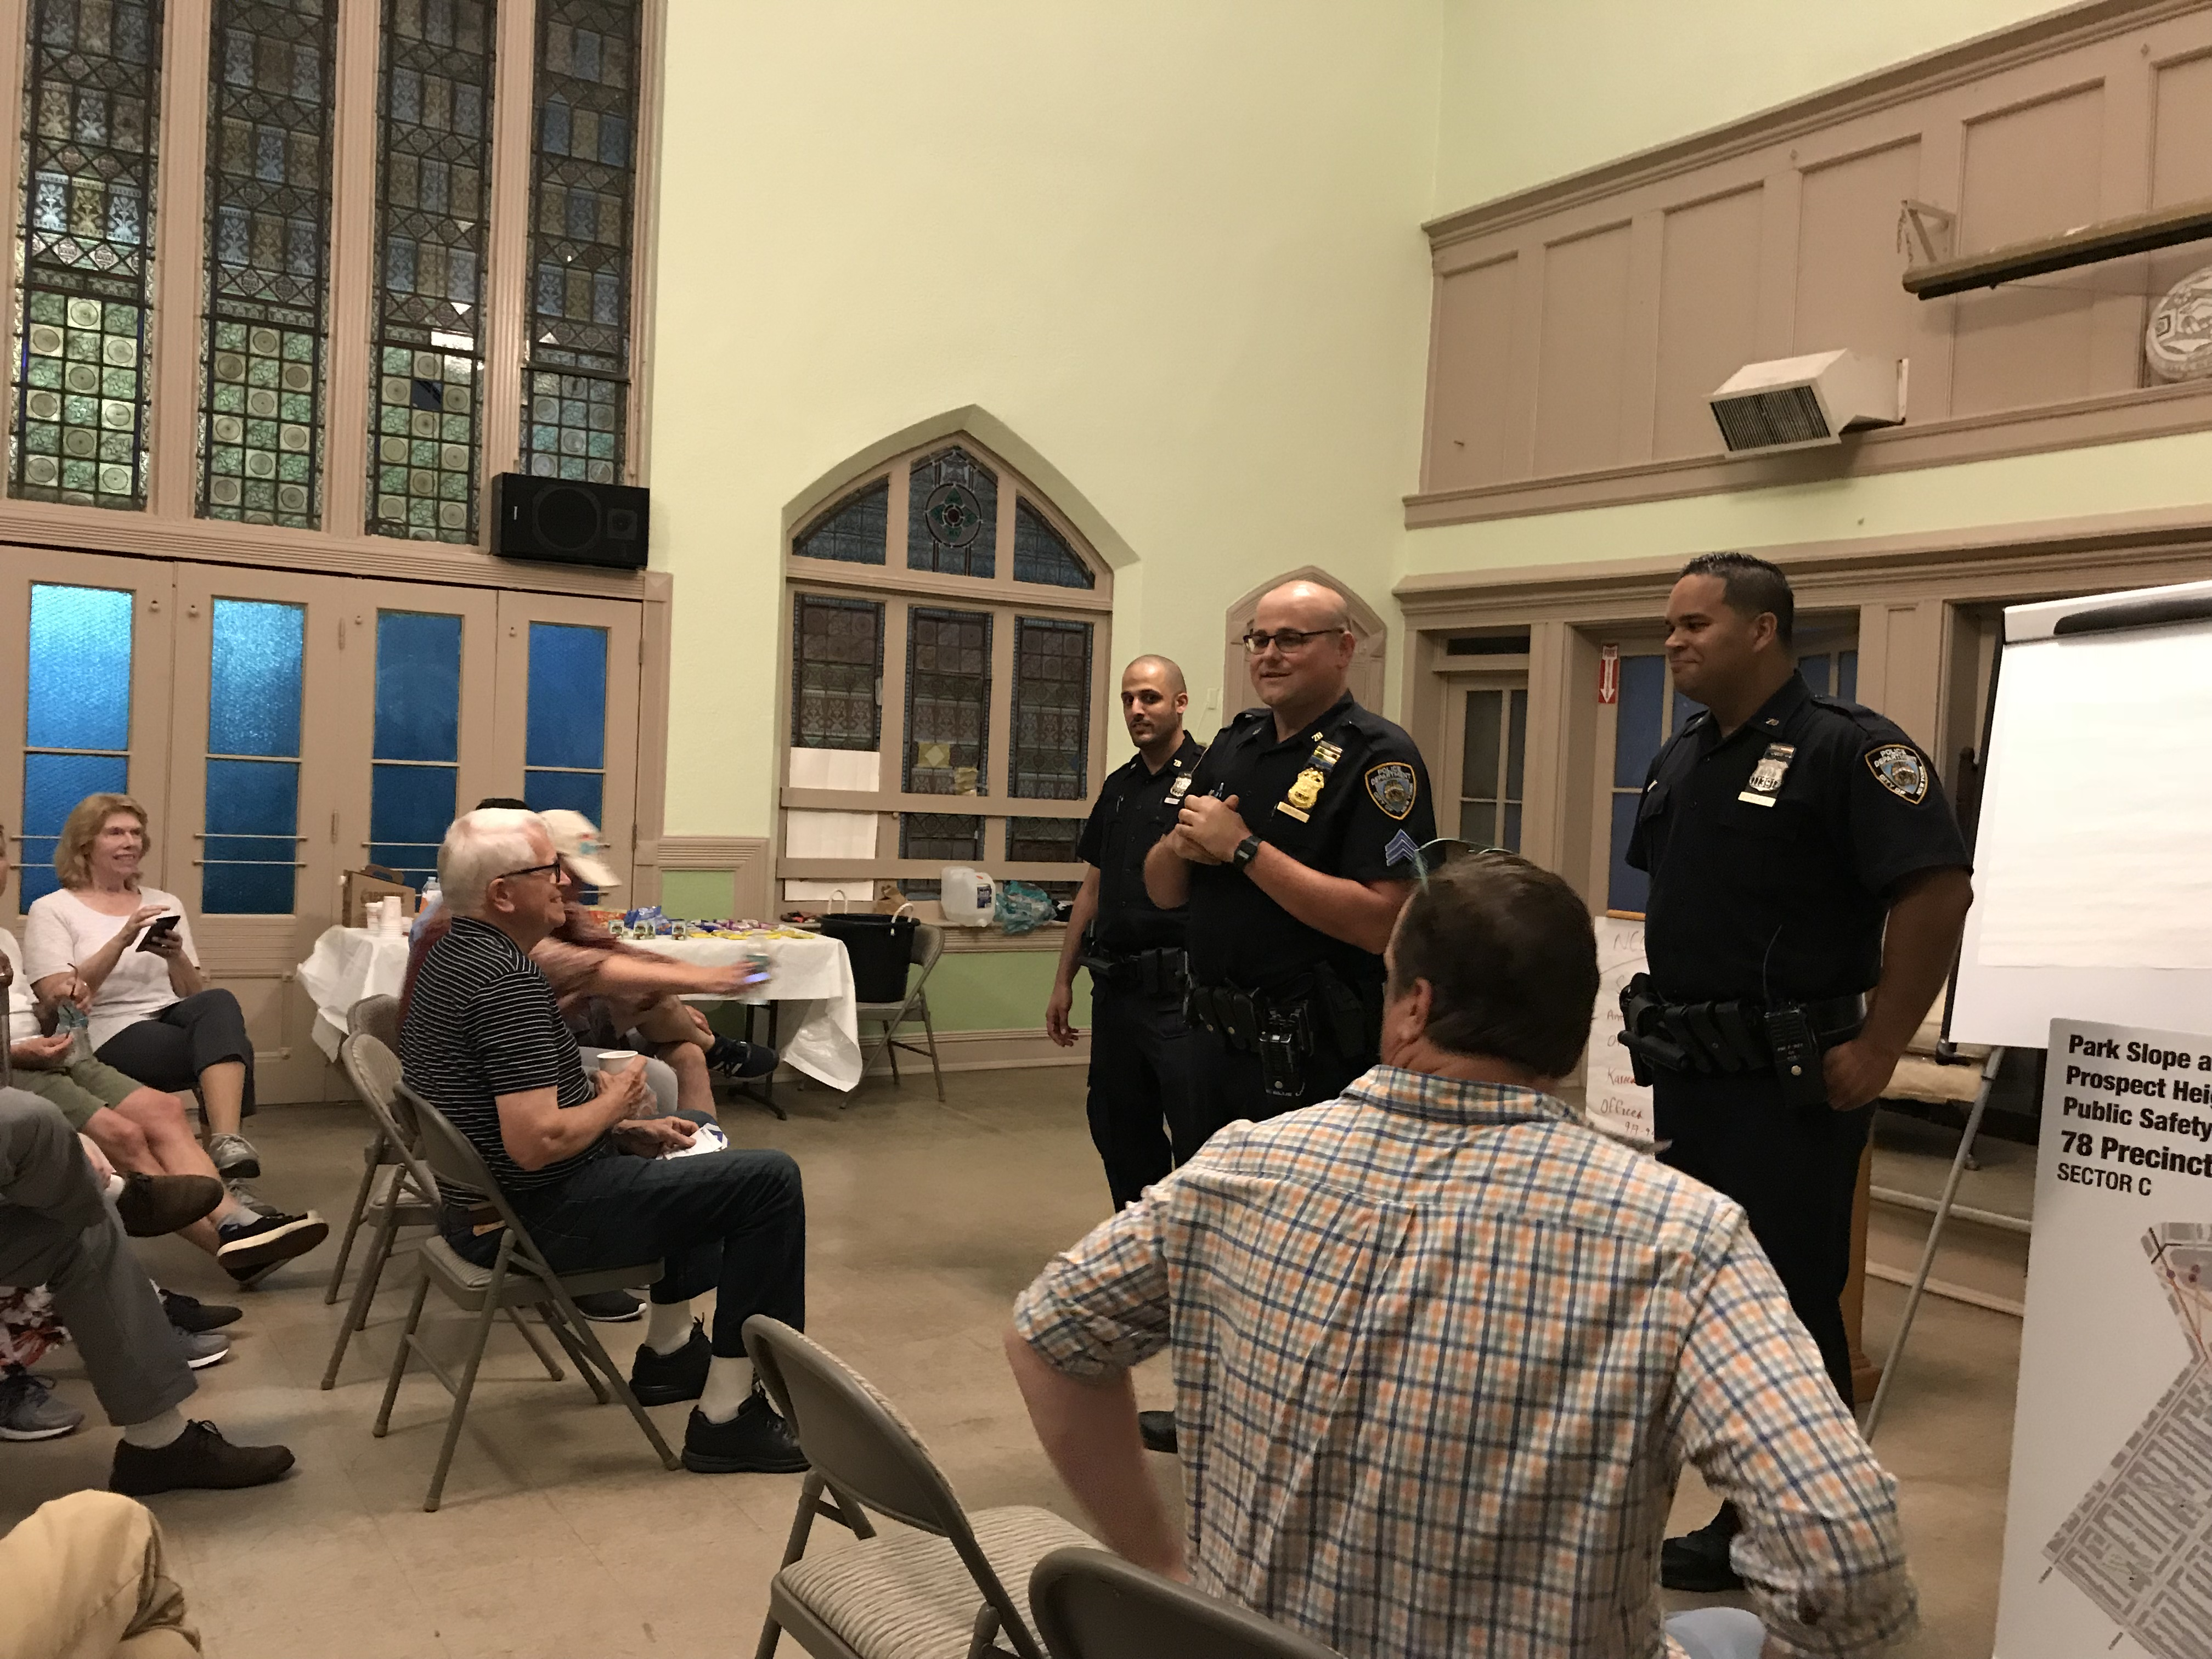 78th Precinct NCO Sector C Build The Block Meeting: Lock Up Your ...